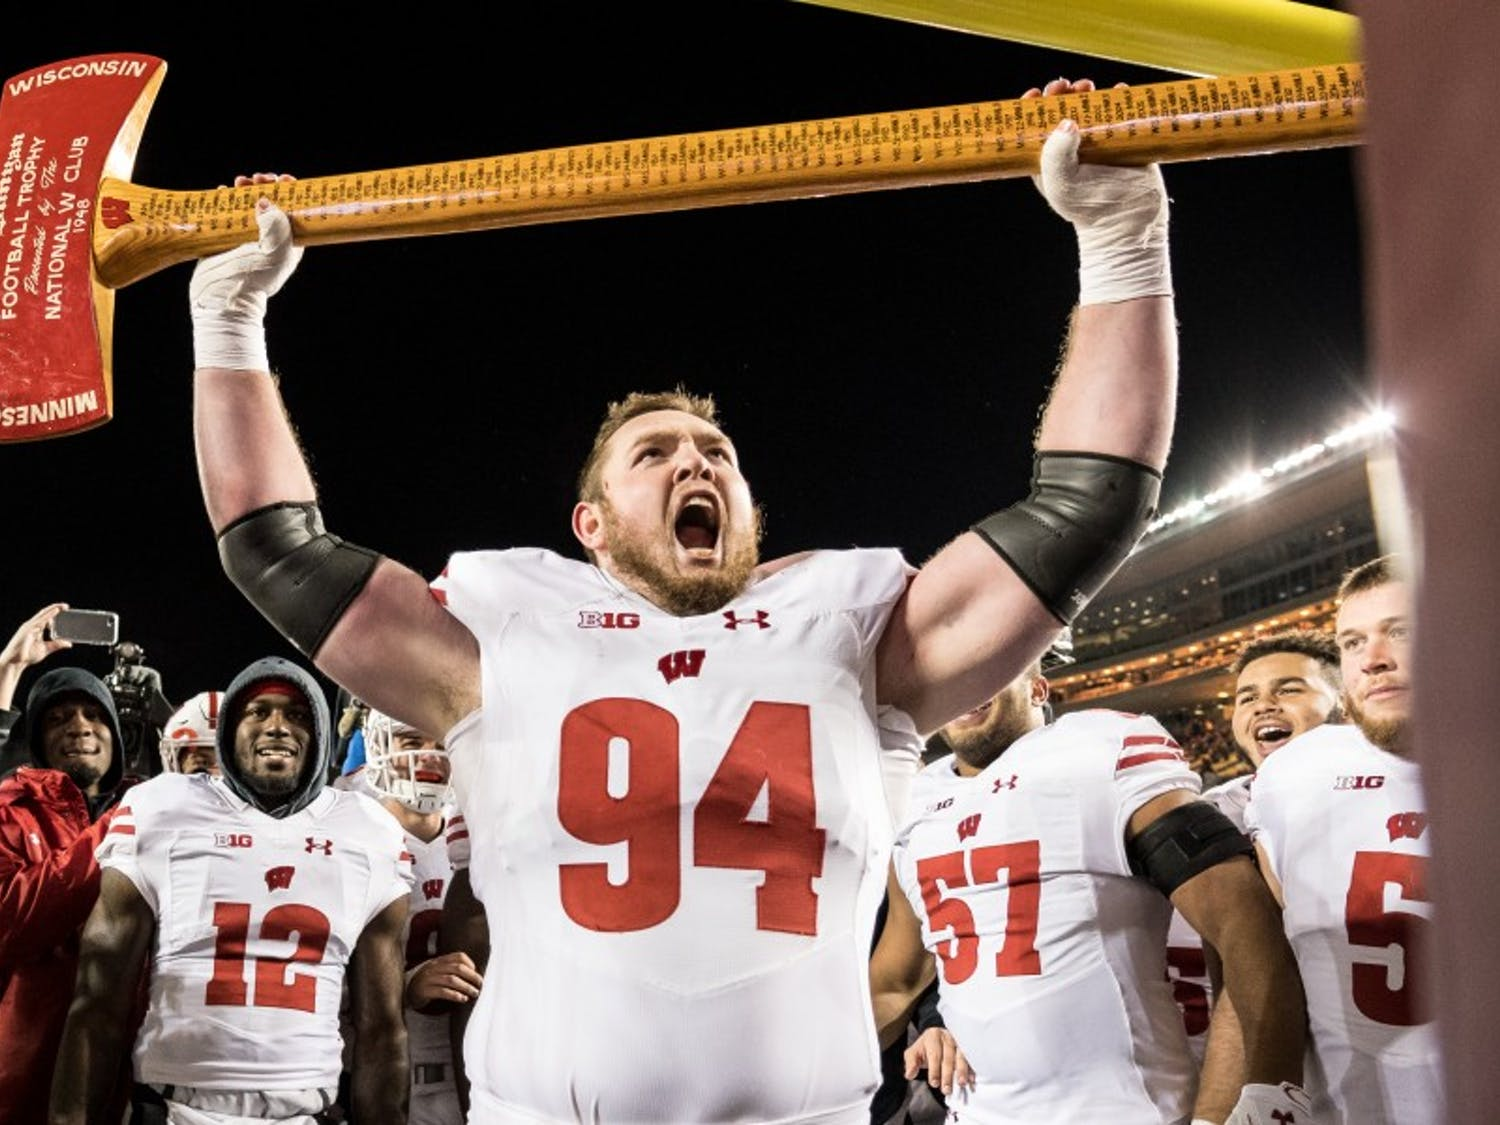 Wisconsin's defense was a key reason for its undefeated regular season.